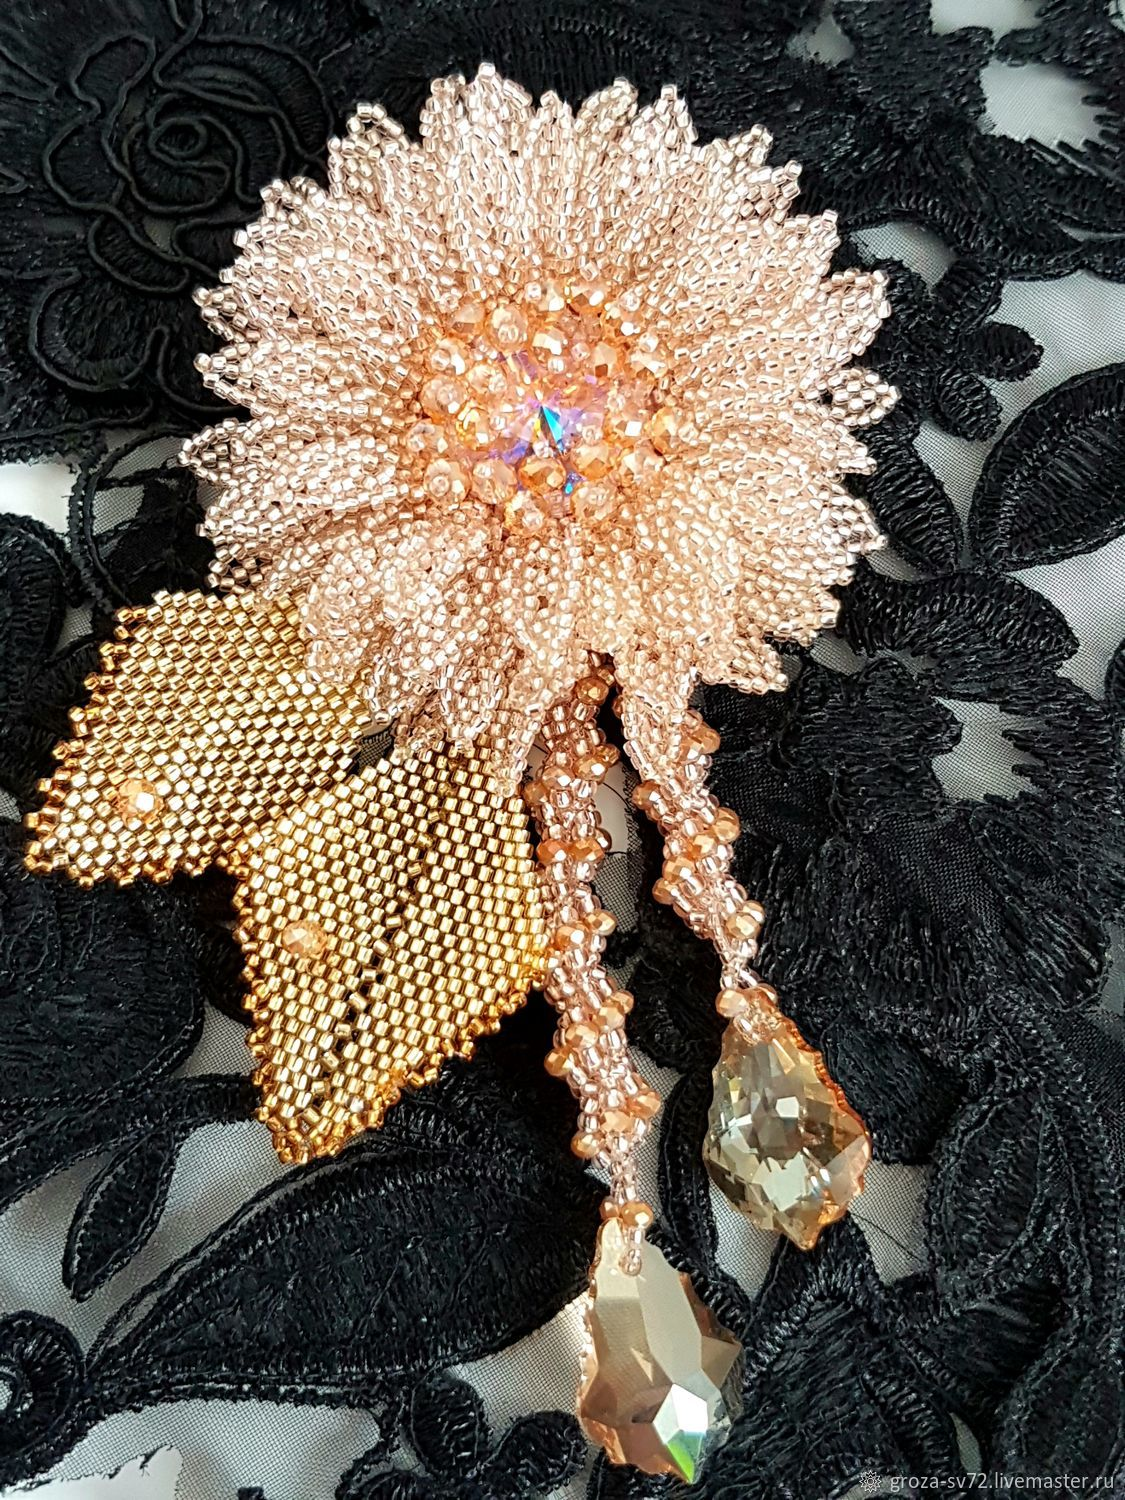 A beaded brooch ' Delicate silk ', Brooches, Moscow,  Фото №1